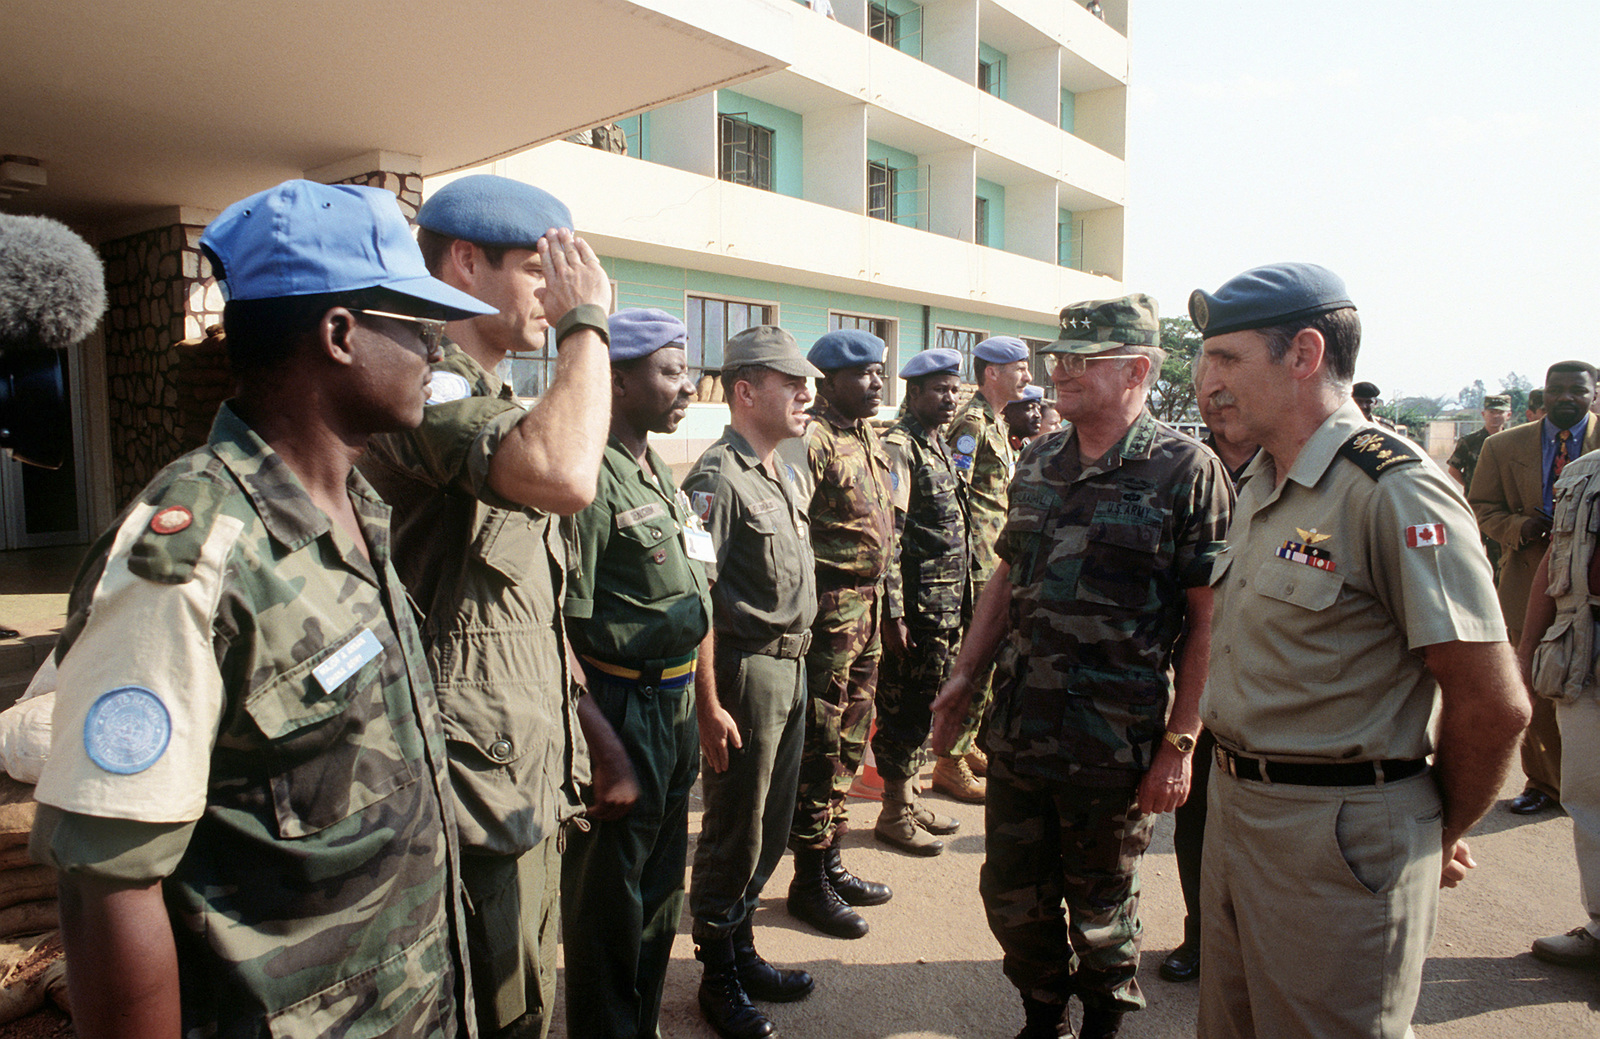 Army GEN John M. Shalikashvili, Chairman of the Joint Chiefs of STAFF inspects United Nations troops from Ghana's Fighting Third during a visit to check the progress of the Rwandan relief effort